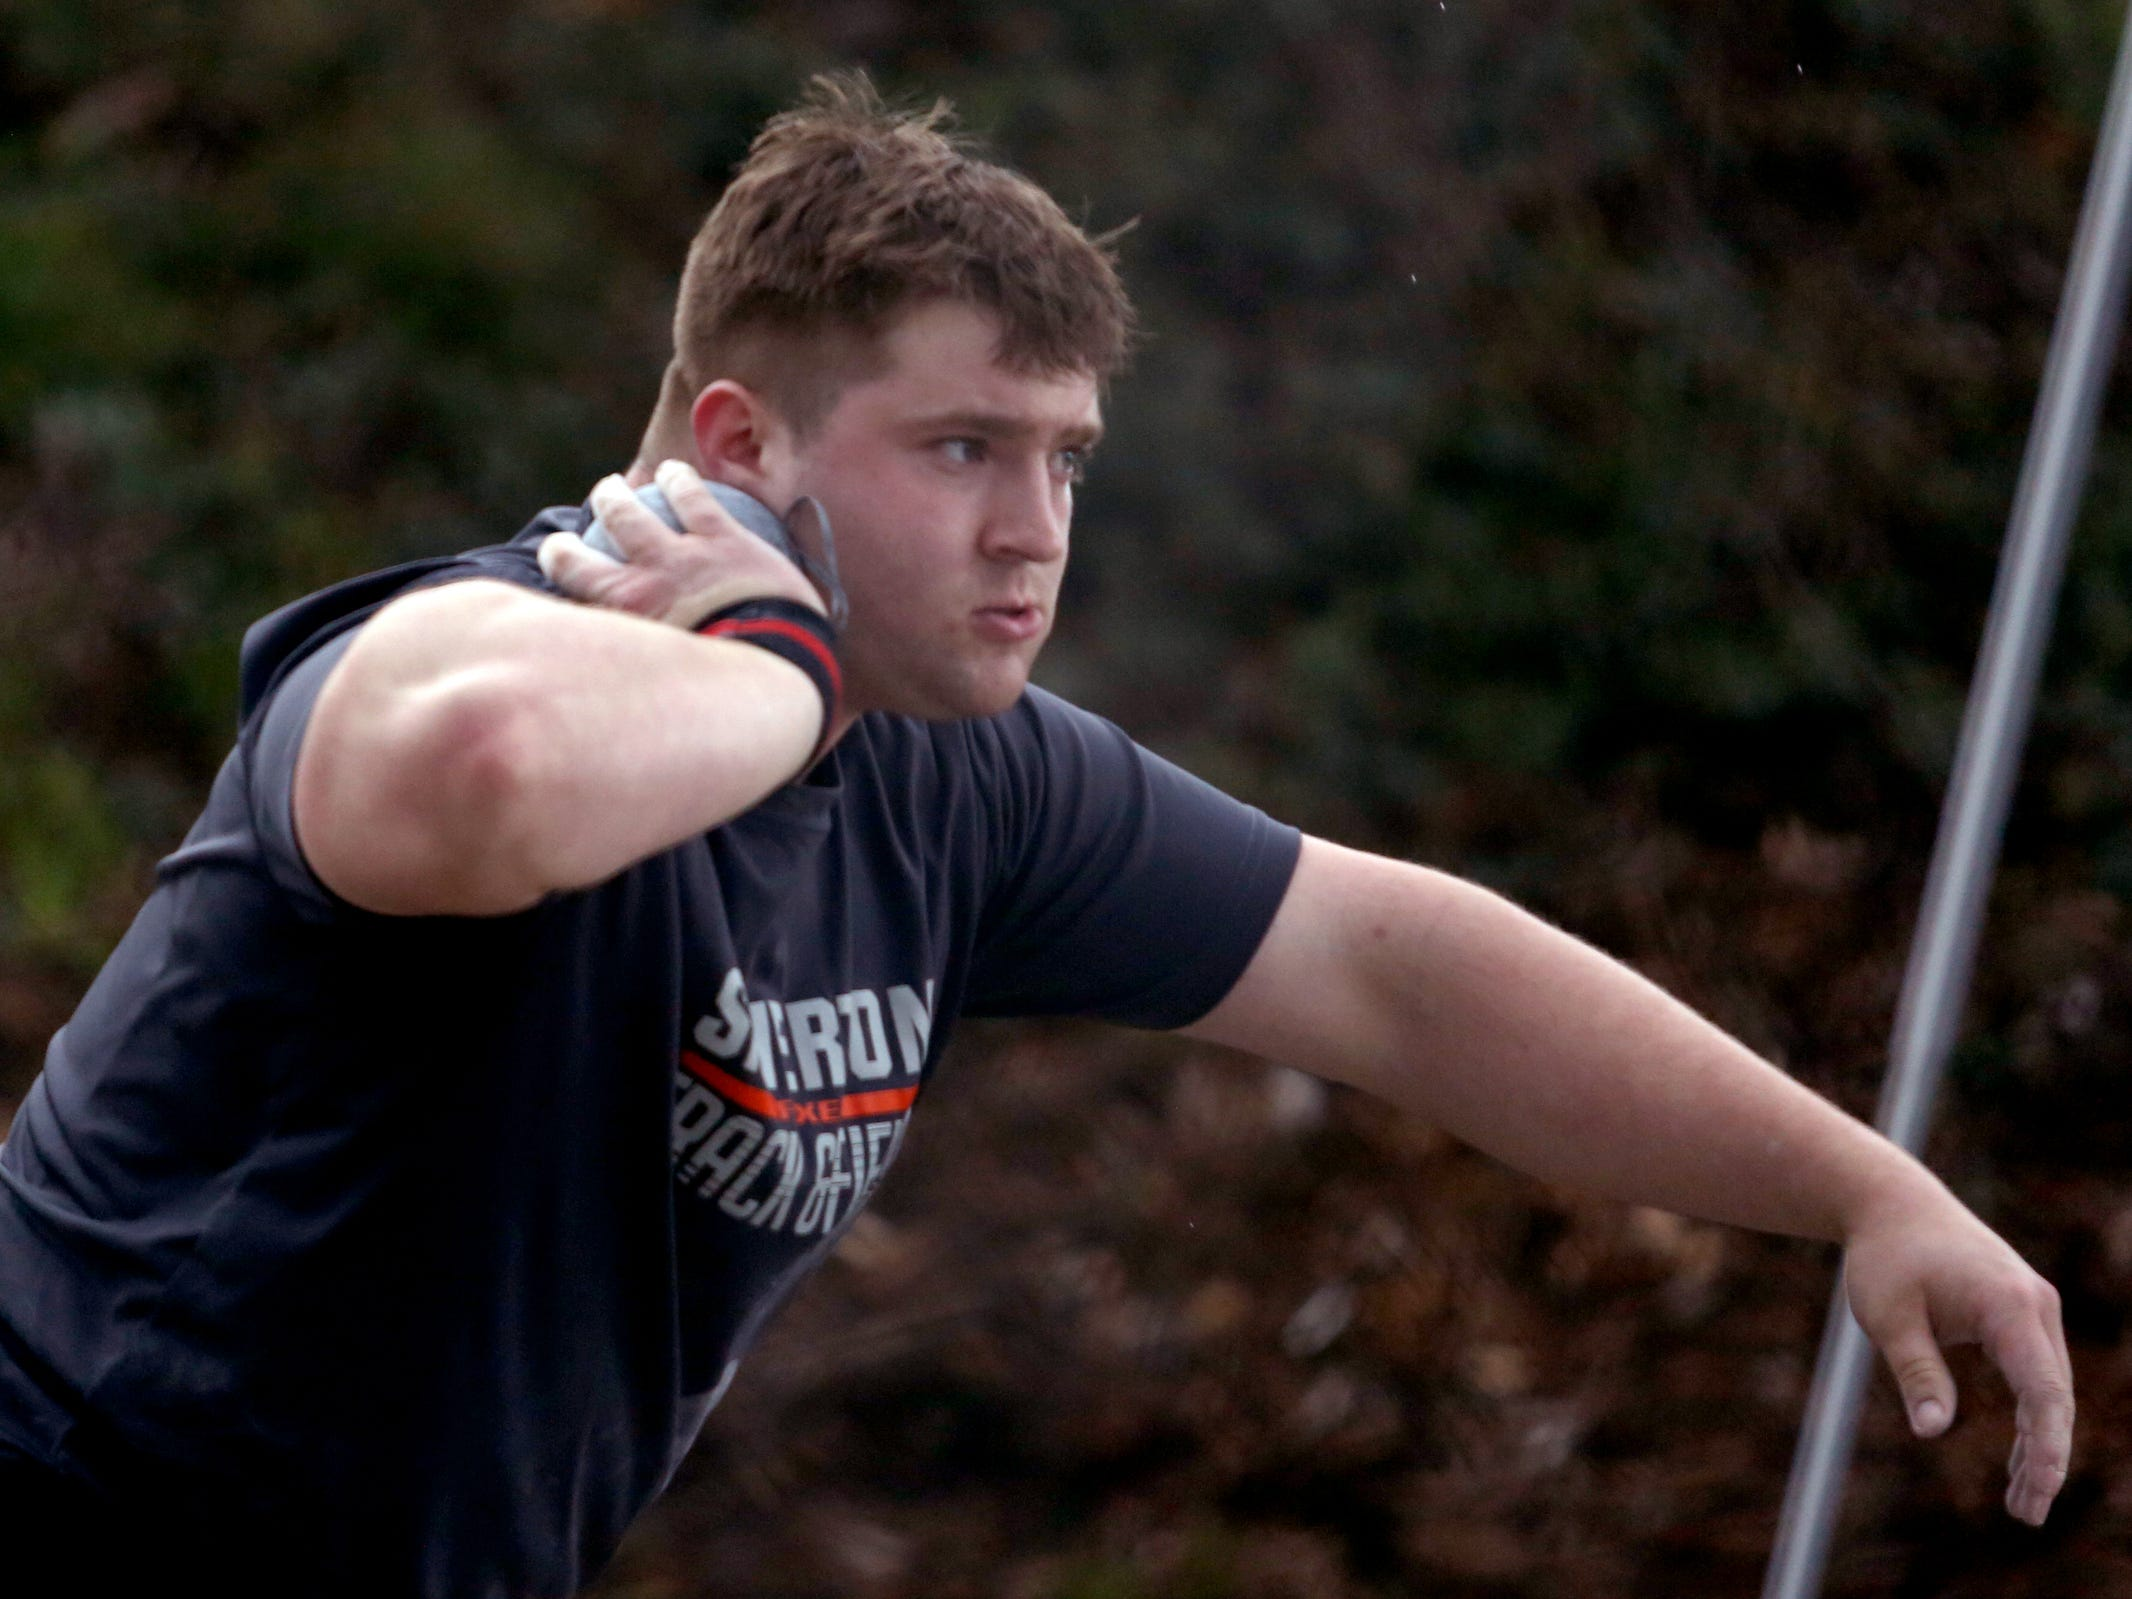 Silverton's Ben Willis competes in the boys shot put during the Titan Track Classic high school track and field meet at West Salem High School on April 5, 2019.